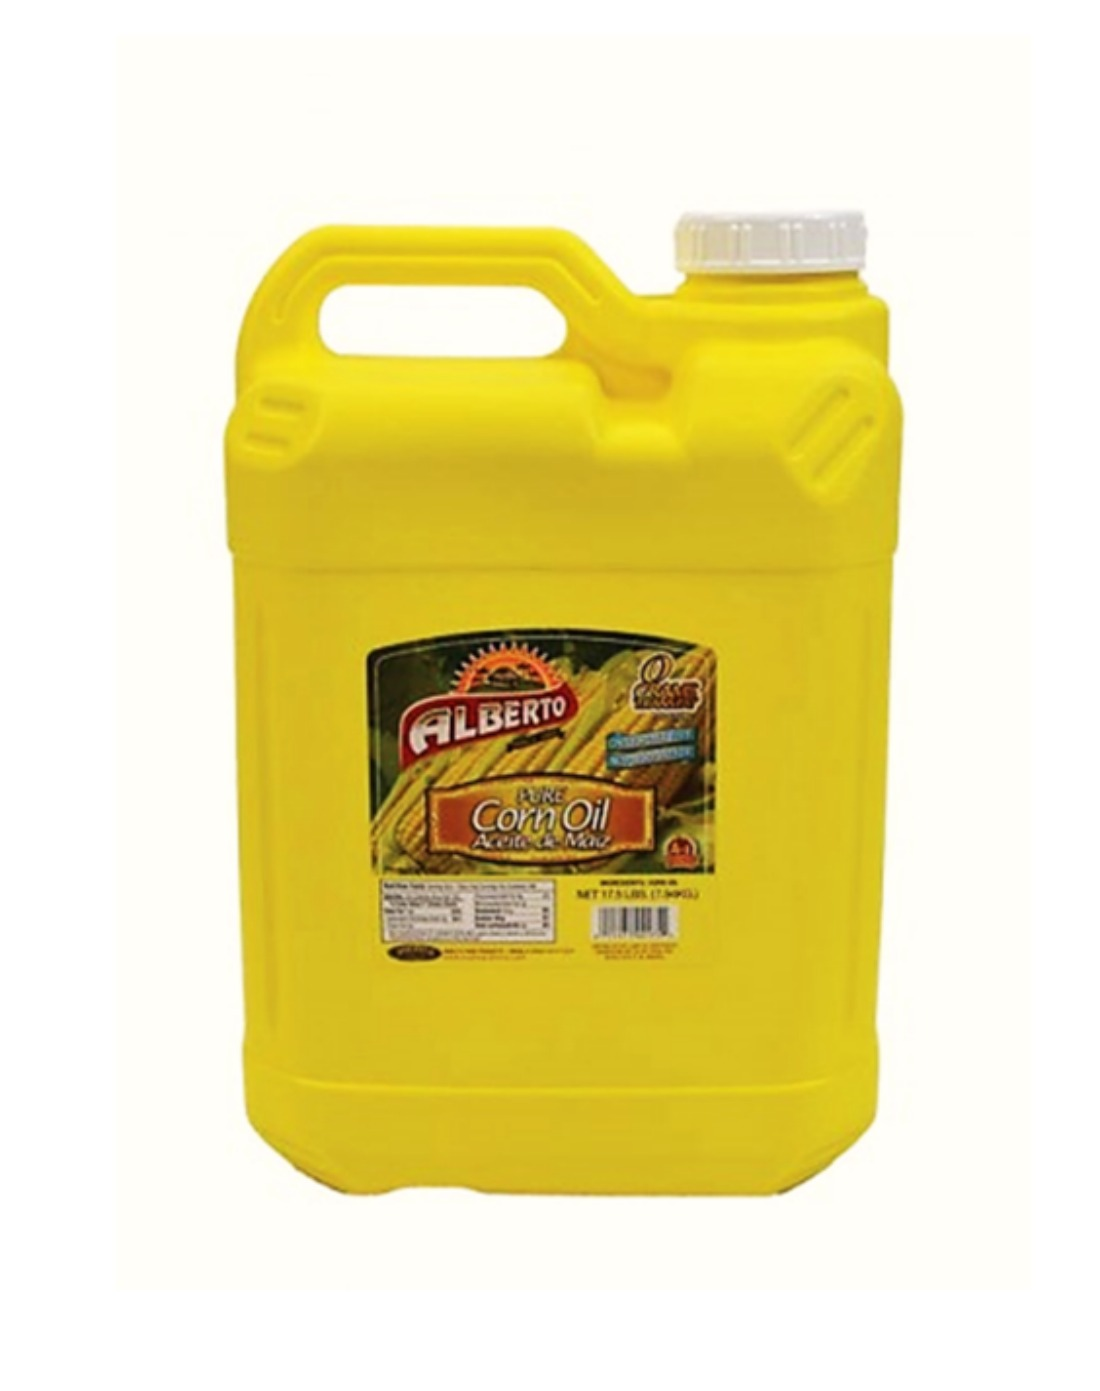 Alberto Corn Oil (2 Gallon) 17.5 Lbs